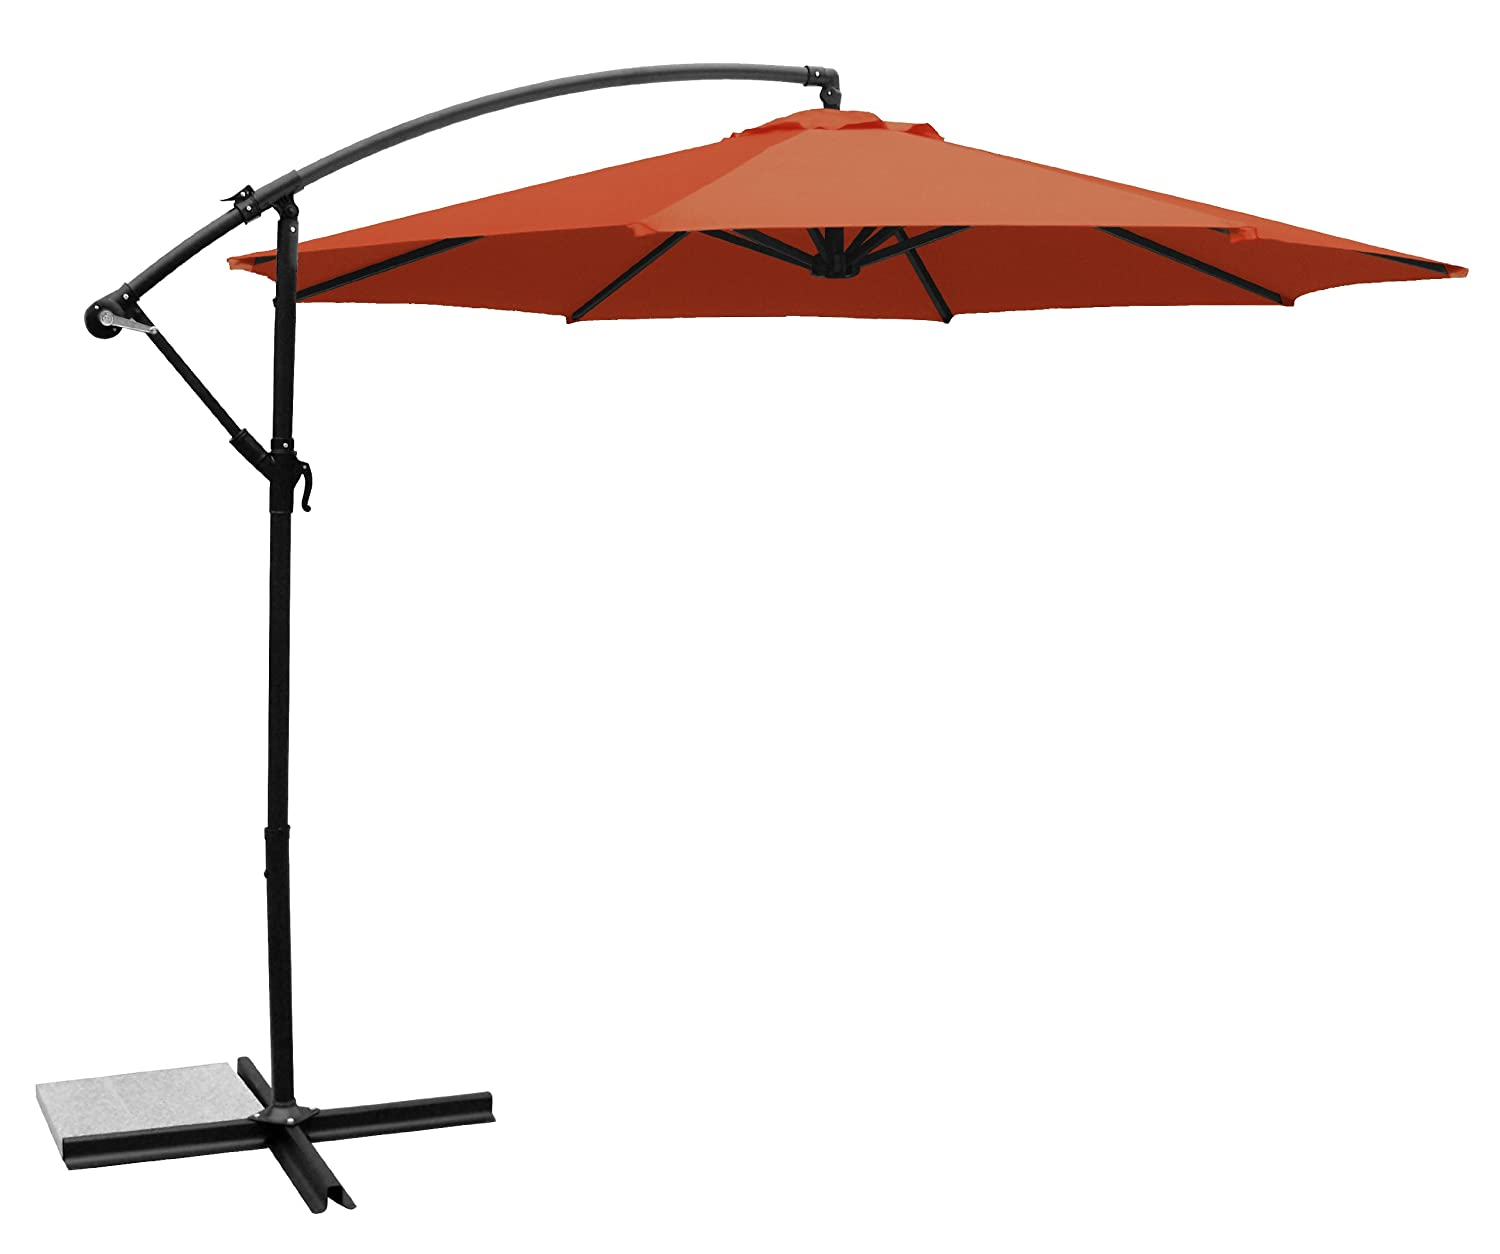 Amazon.com : Ace Evert Offset Umbrella 8074, 10 Ft, Polyester, Beige :  Patio Umbrellas : Garden U0026 Outdoor